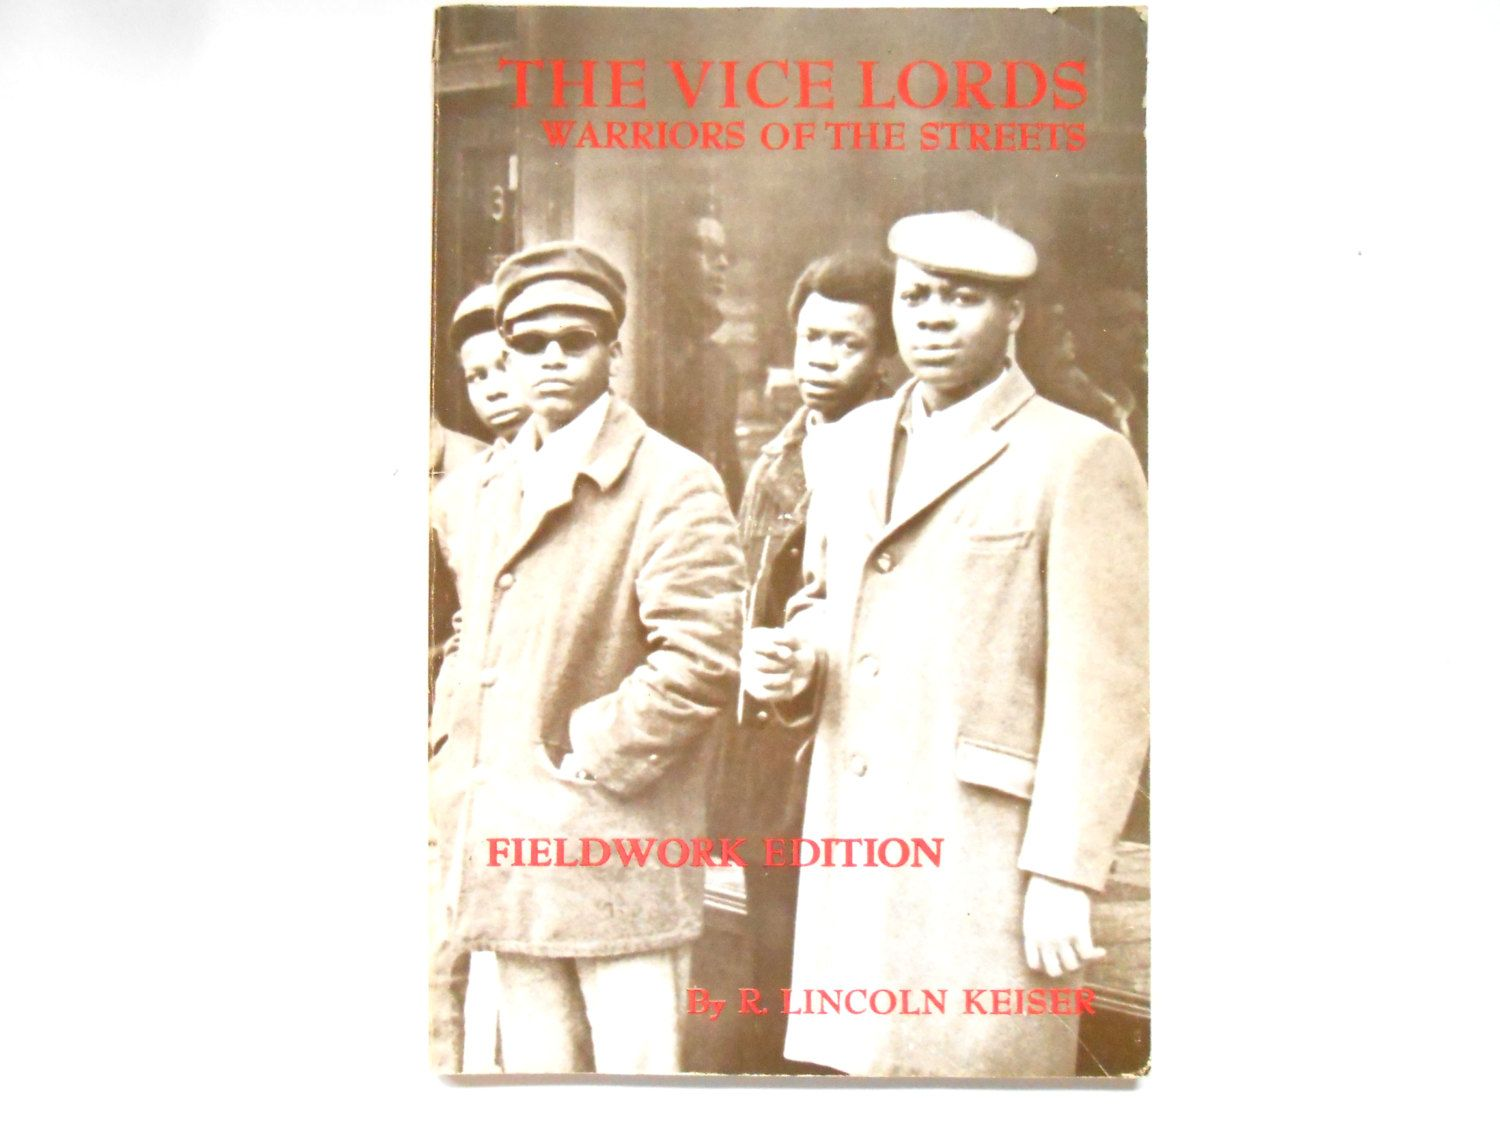 The Vice Lords Warriors Of The Streets A Vintage Book